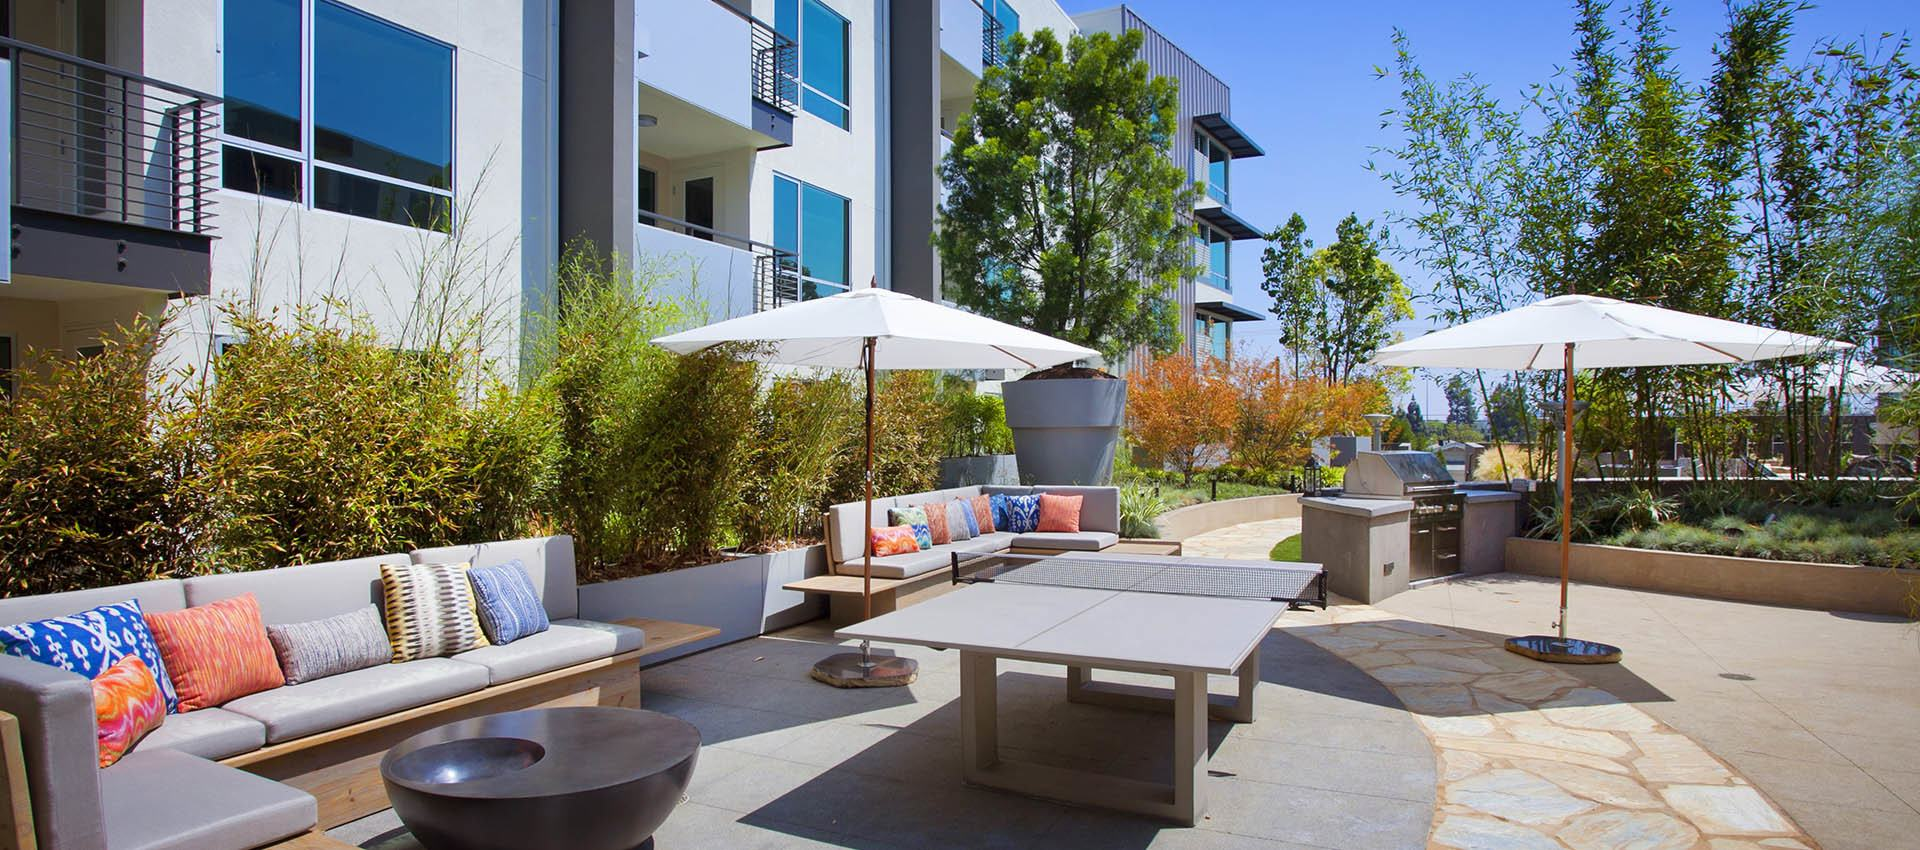 Patio at apartments in Glendale, CA